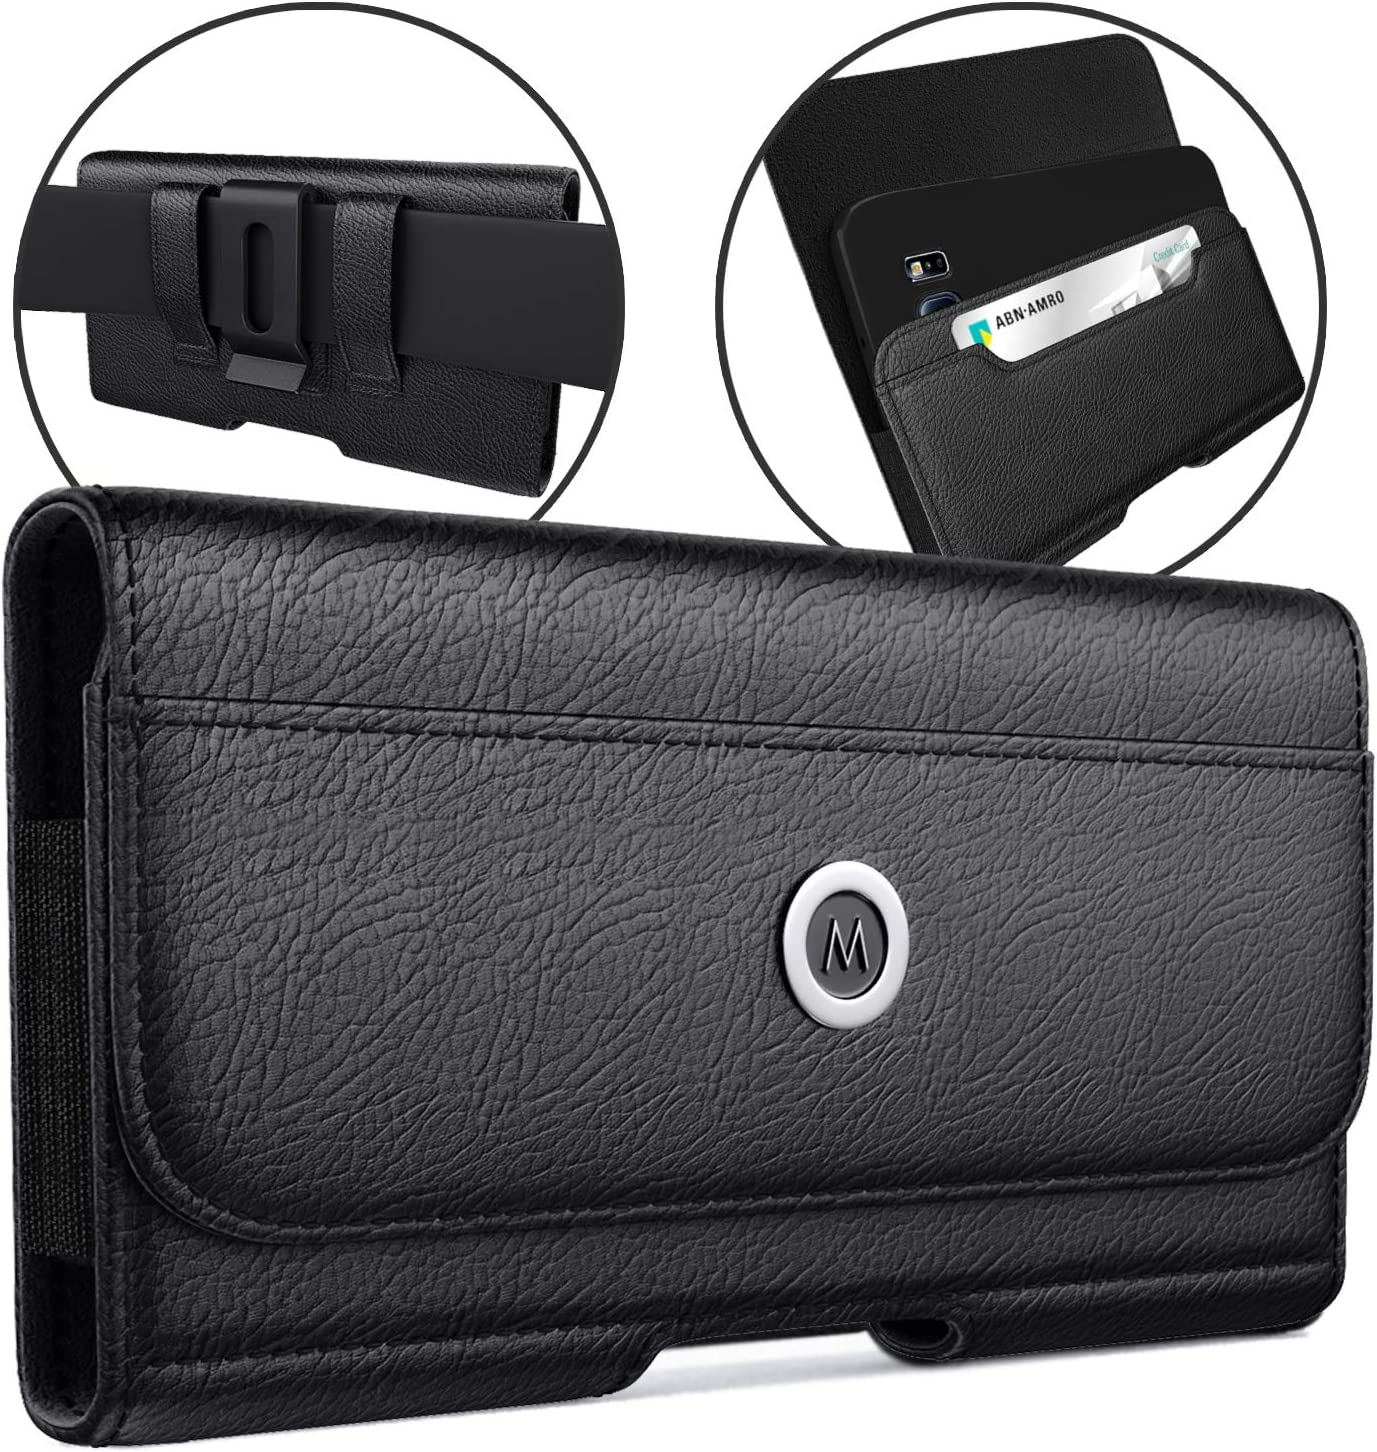 Belt Case Designed for iPhone 12 Pro iPhone 11 Belt Holster with Belt Clip Belt Loop Carrying Pouch Belt Holder Built in ID Holder Fits iPhone 12 Pro/ 12/ 11/ XR w/Otterbox Commuter Case on